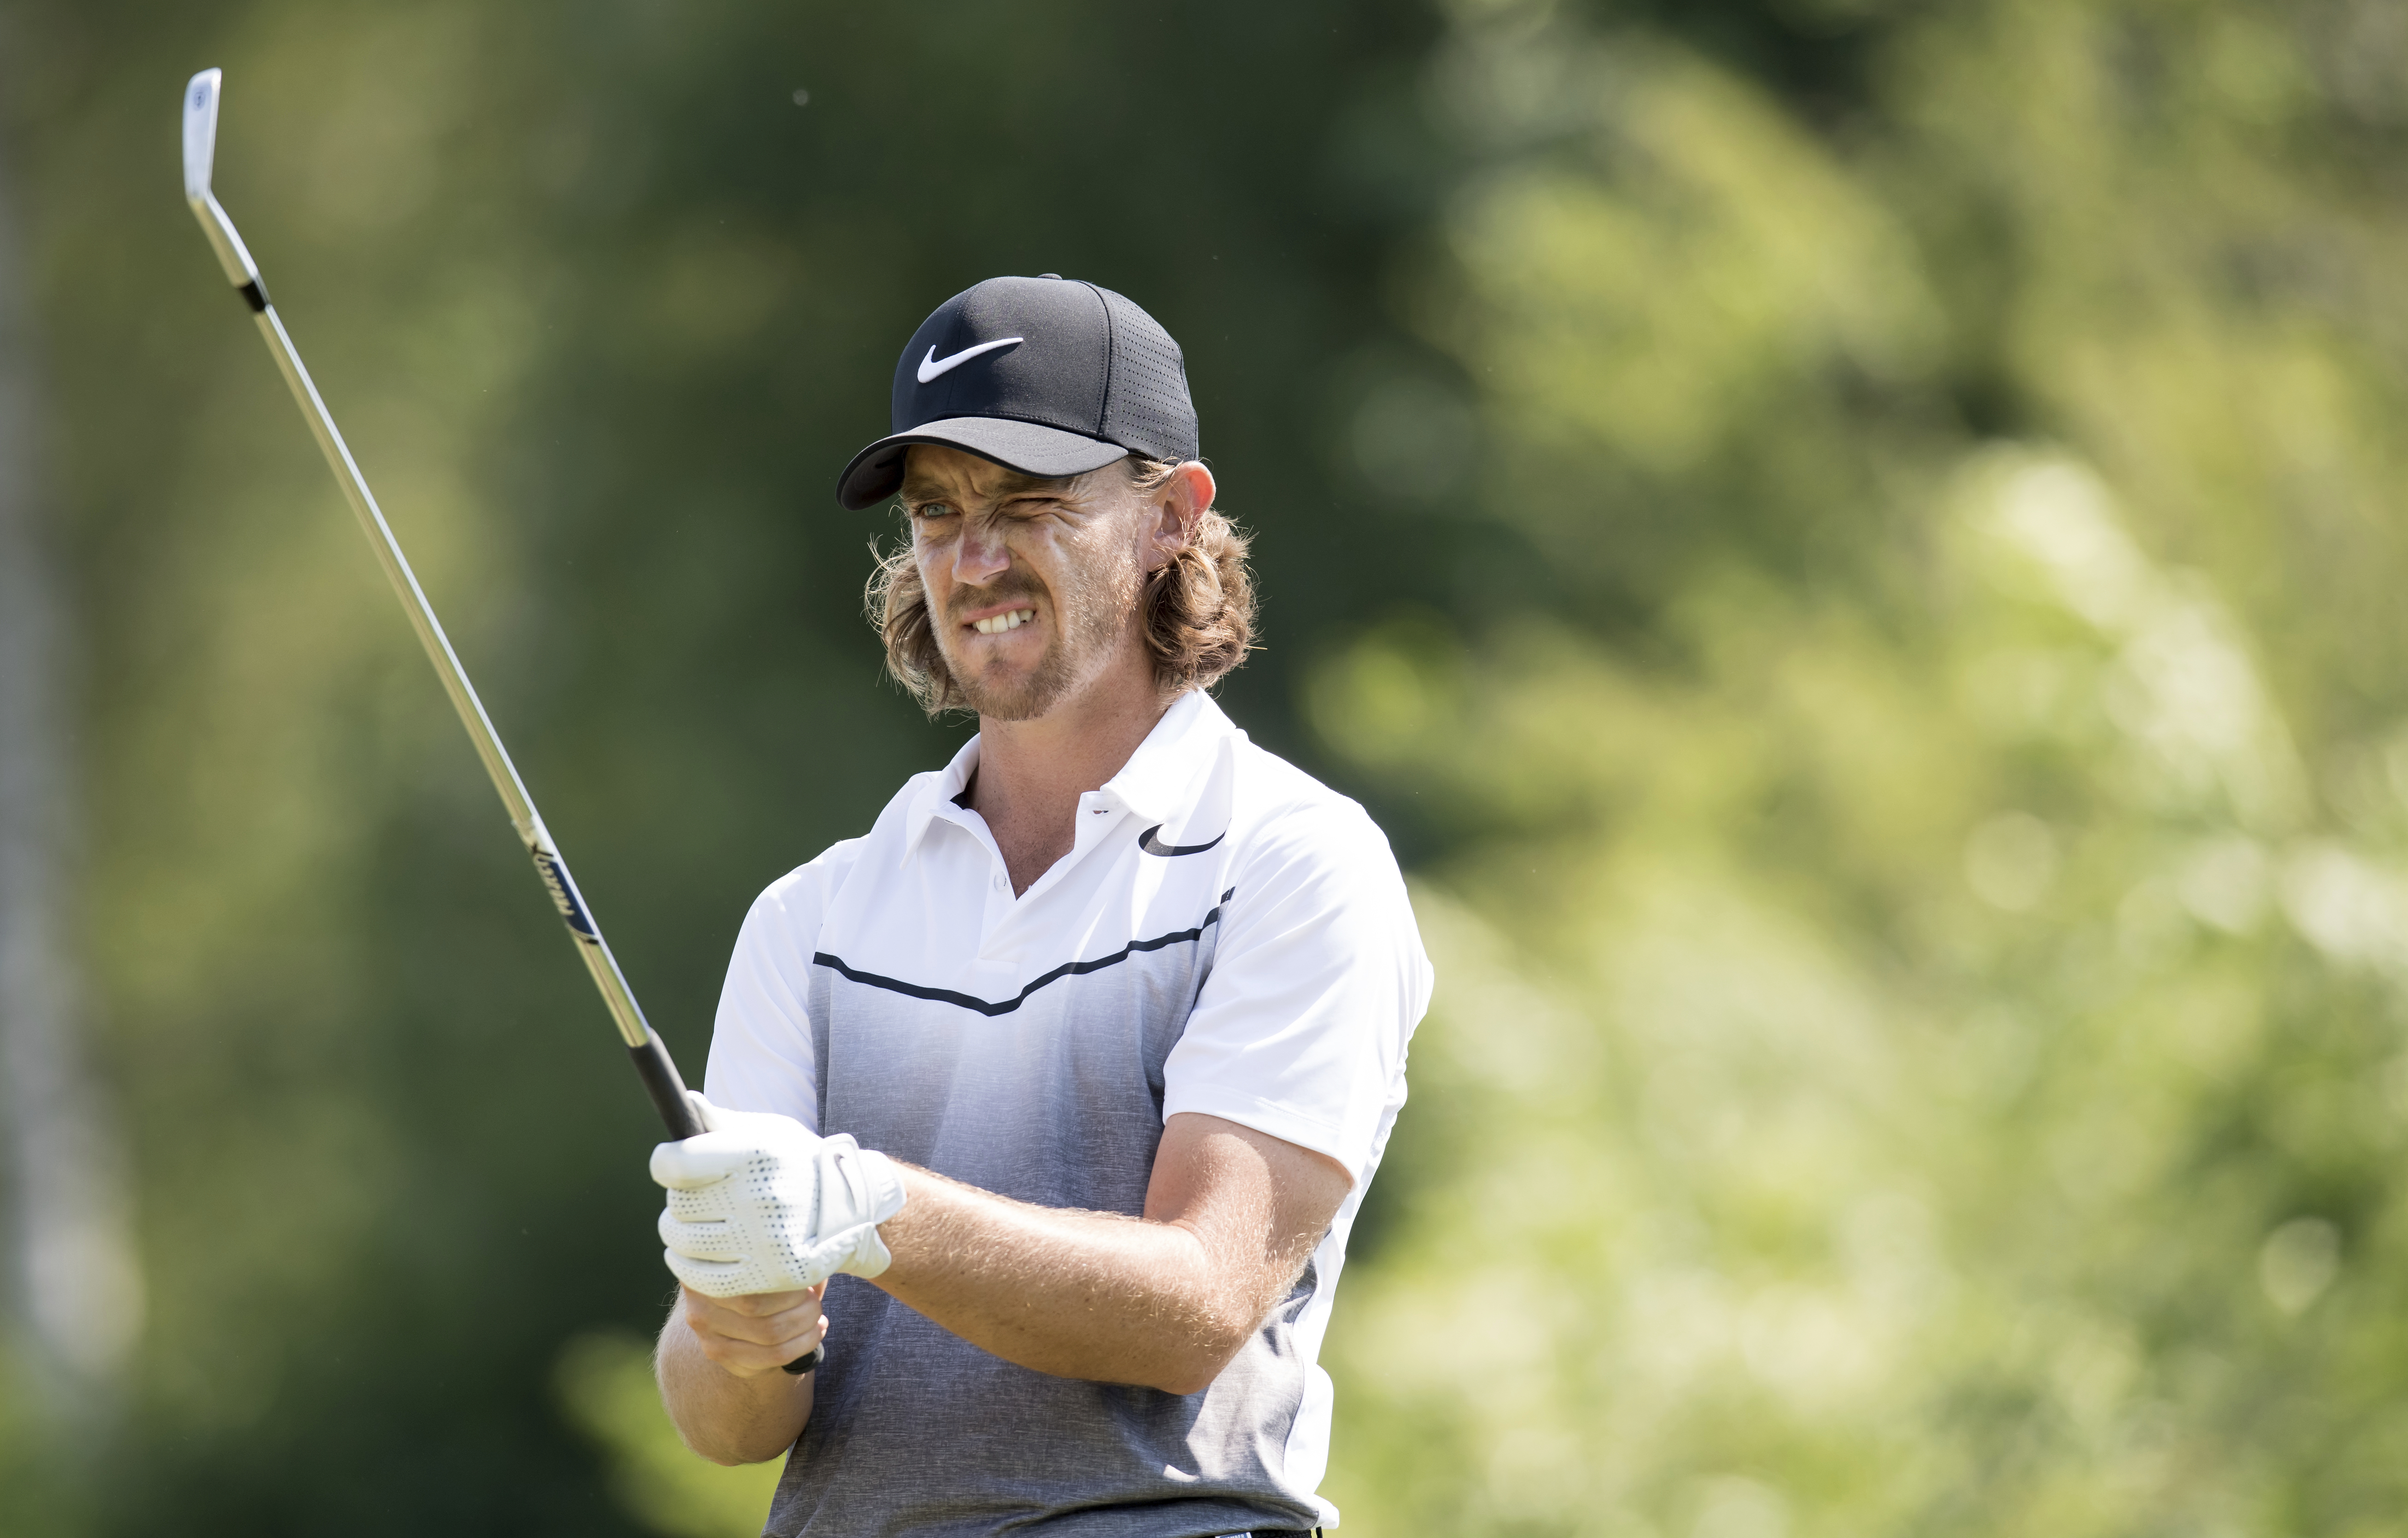 Britain's Tommy Fleetwood competes during the German Open golf tournament in Eichenried, near Munich, Germany, Thursday, June 22, 2017.  (Sven Hoppe/dpa via AP)